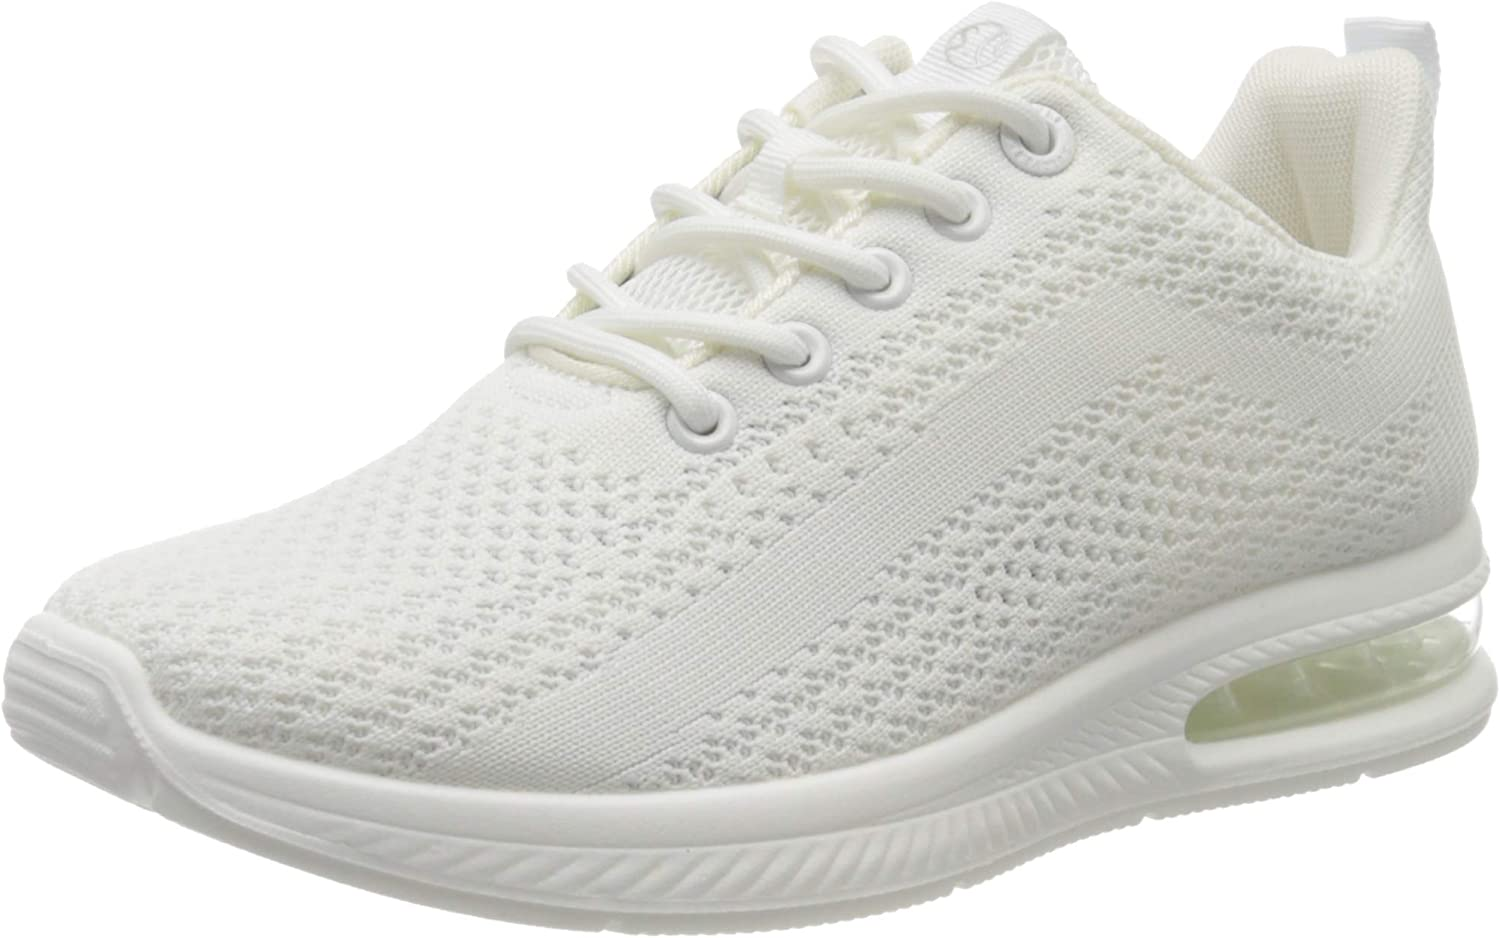 s.Oliver Womens Low-top Trainers